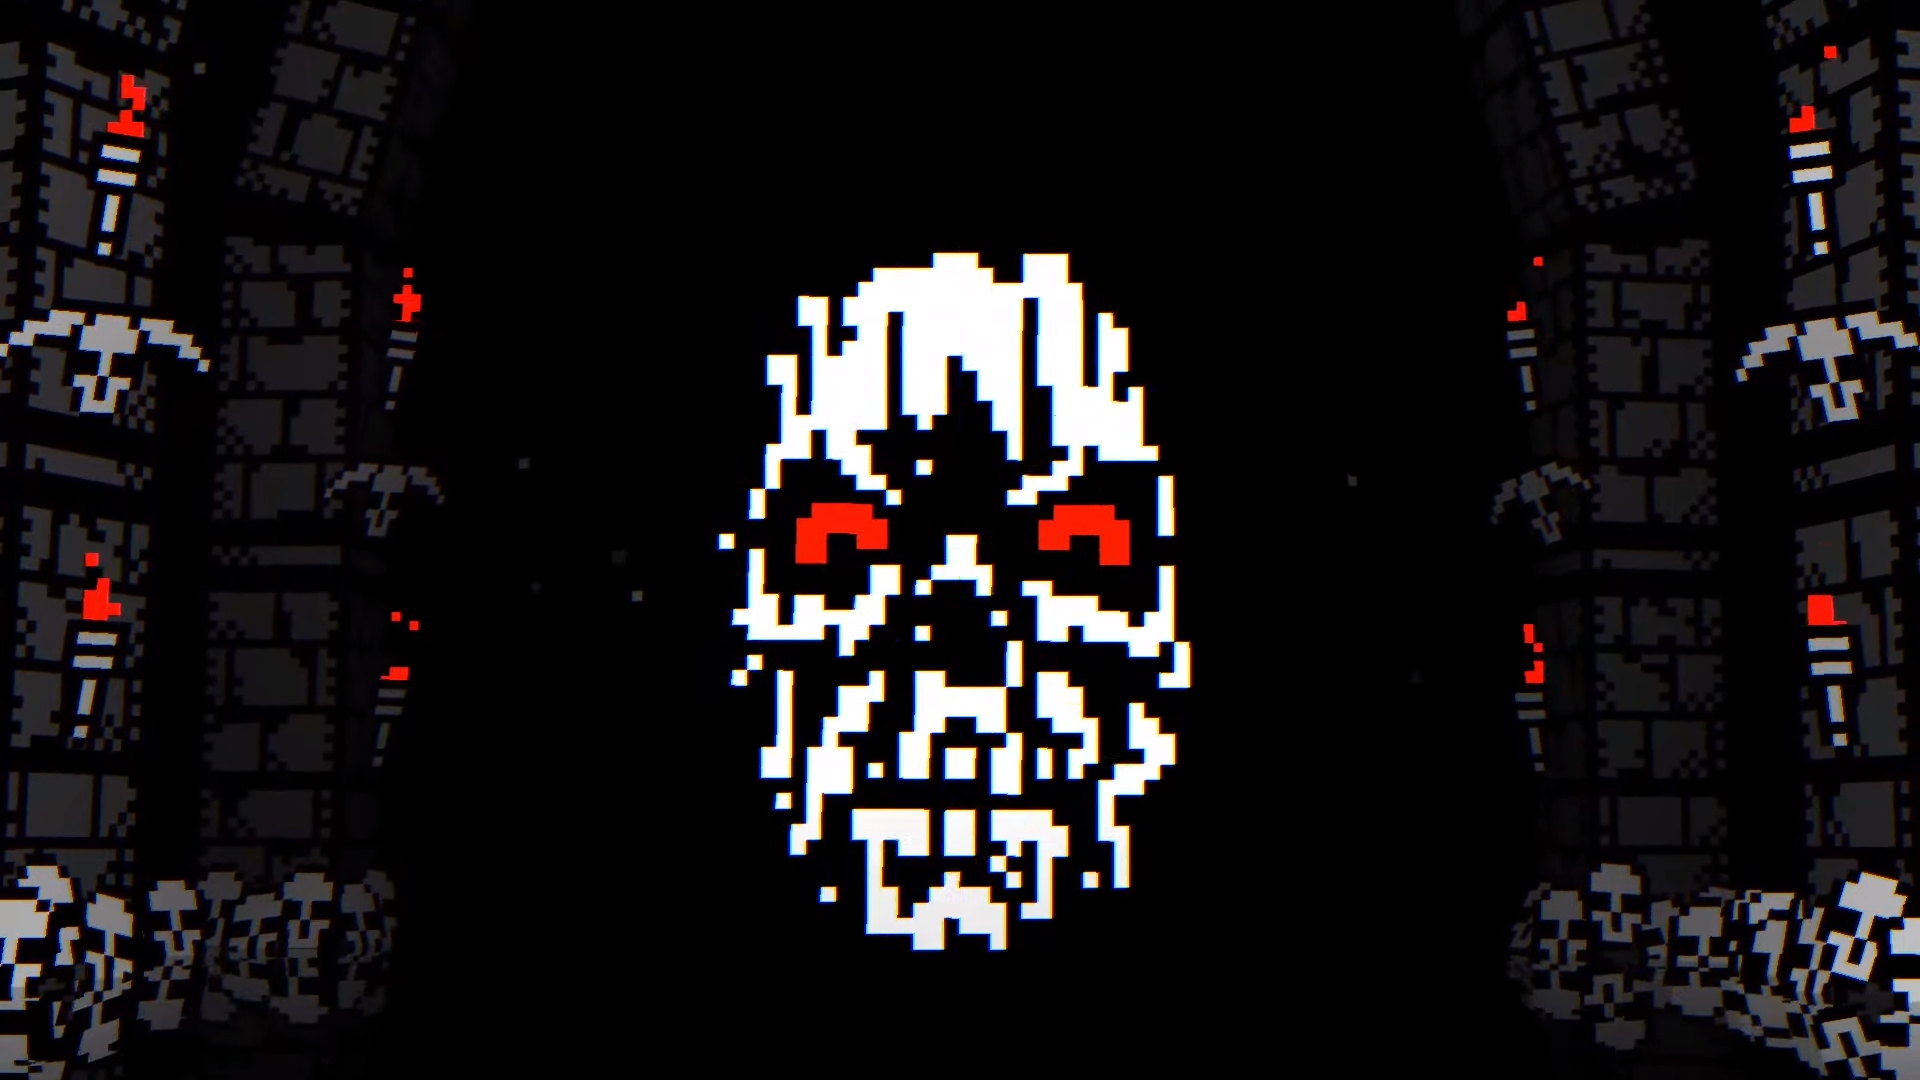 A pixelated skull floats in a dark dungeon